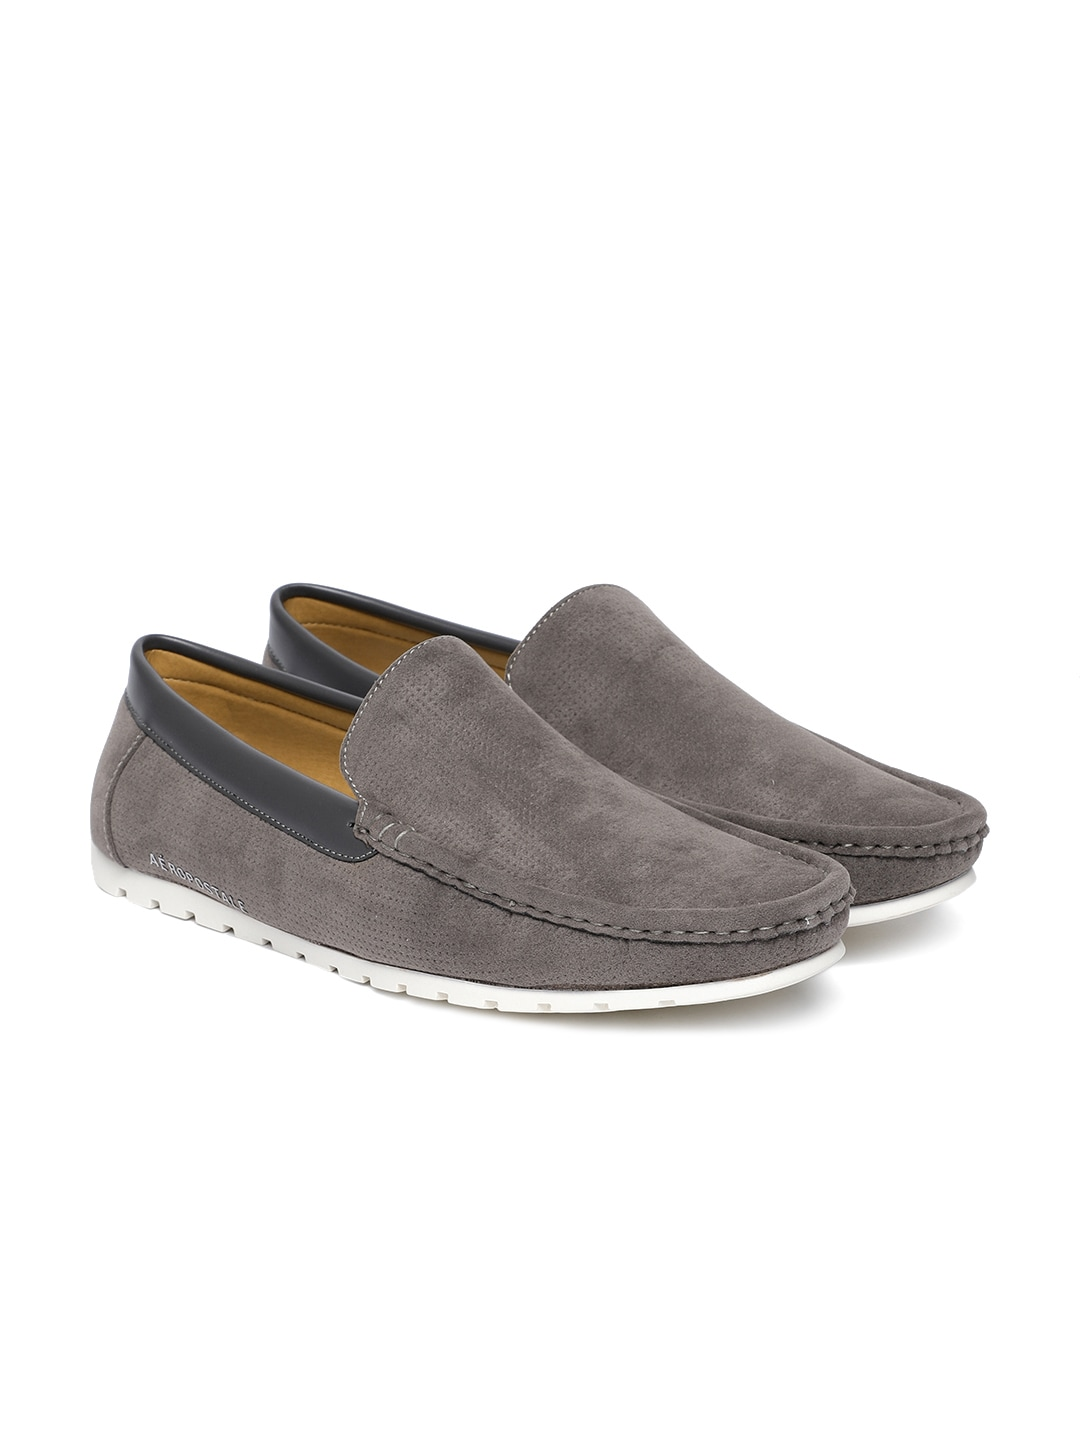 97bd301674d Leather Casual Shoes - Buy Leather Casual Shoes Online in India